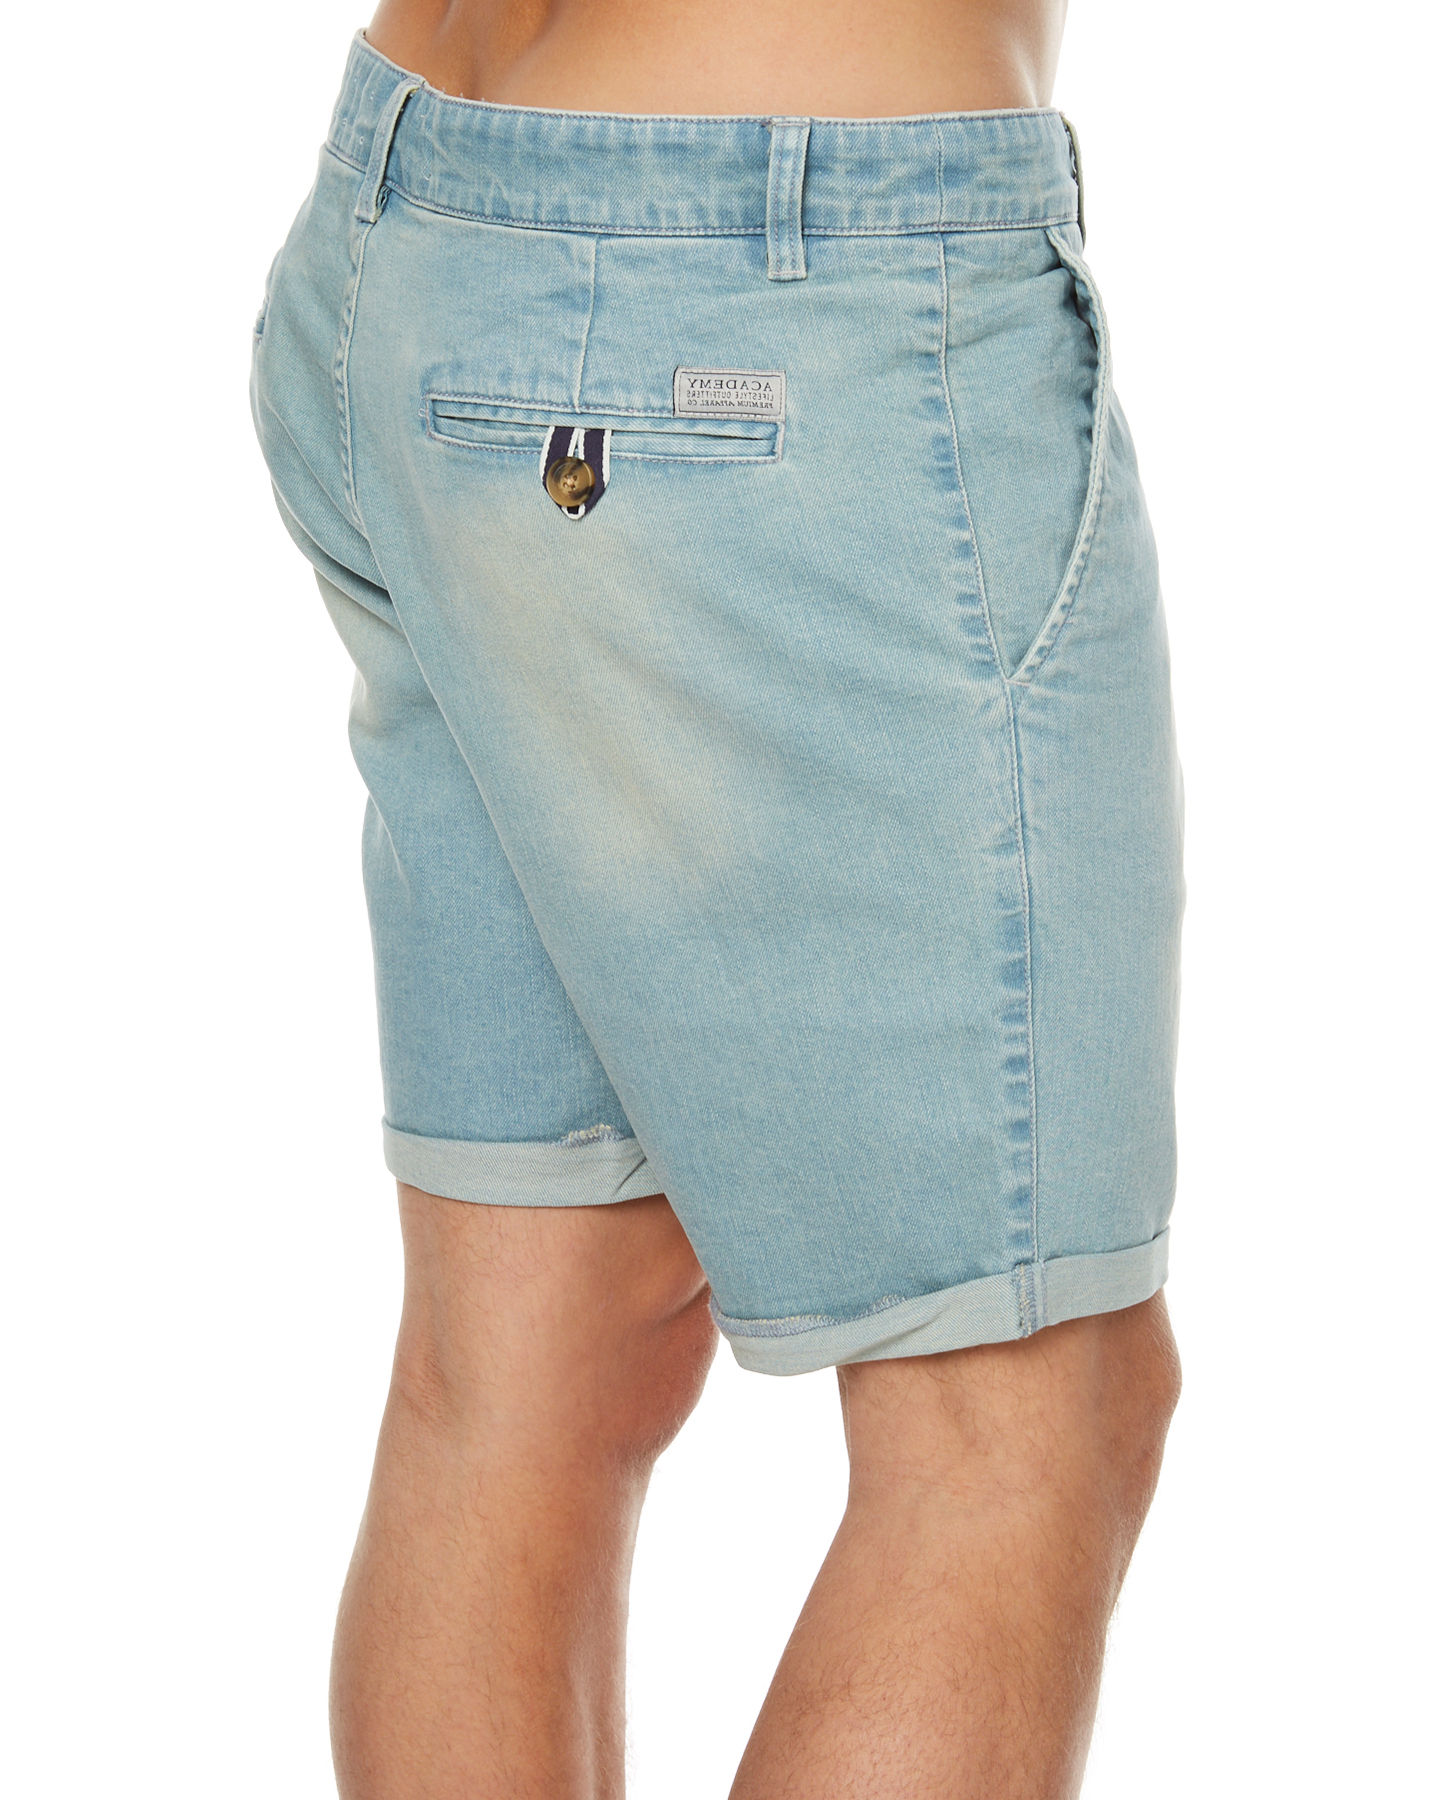 Academy Brand Brooklyn Mens Denim Short - Light Blue | SurfStitch